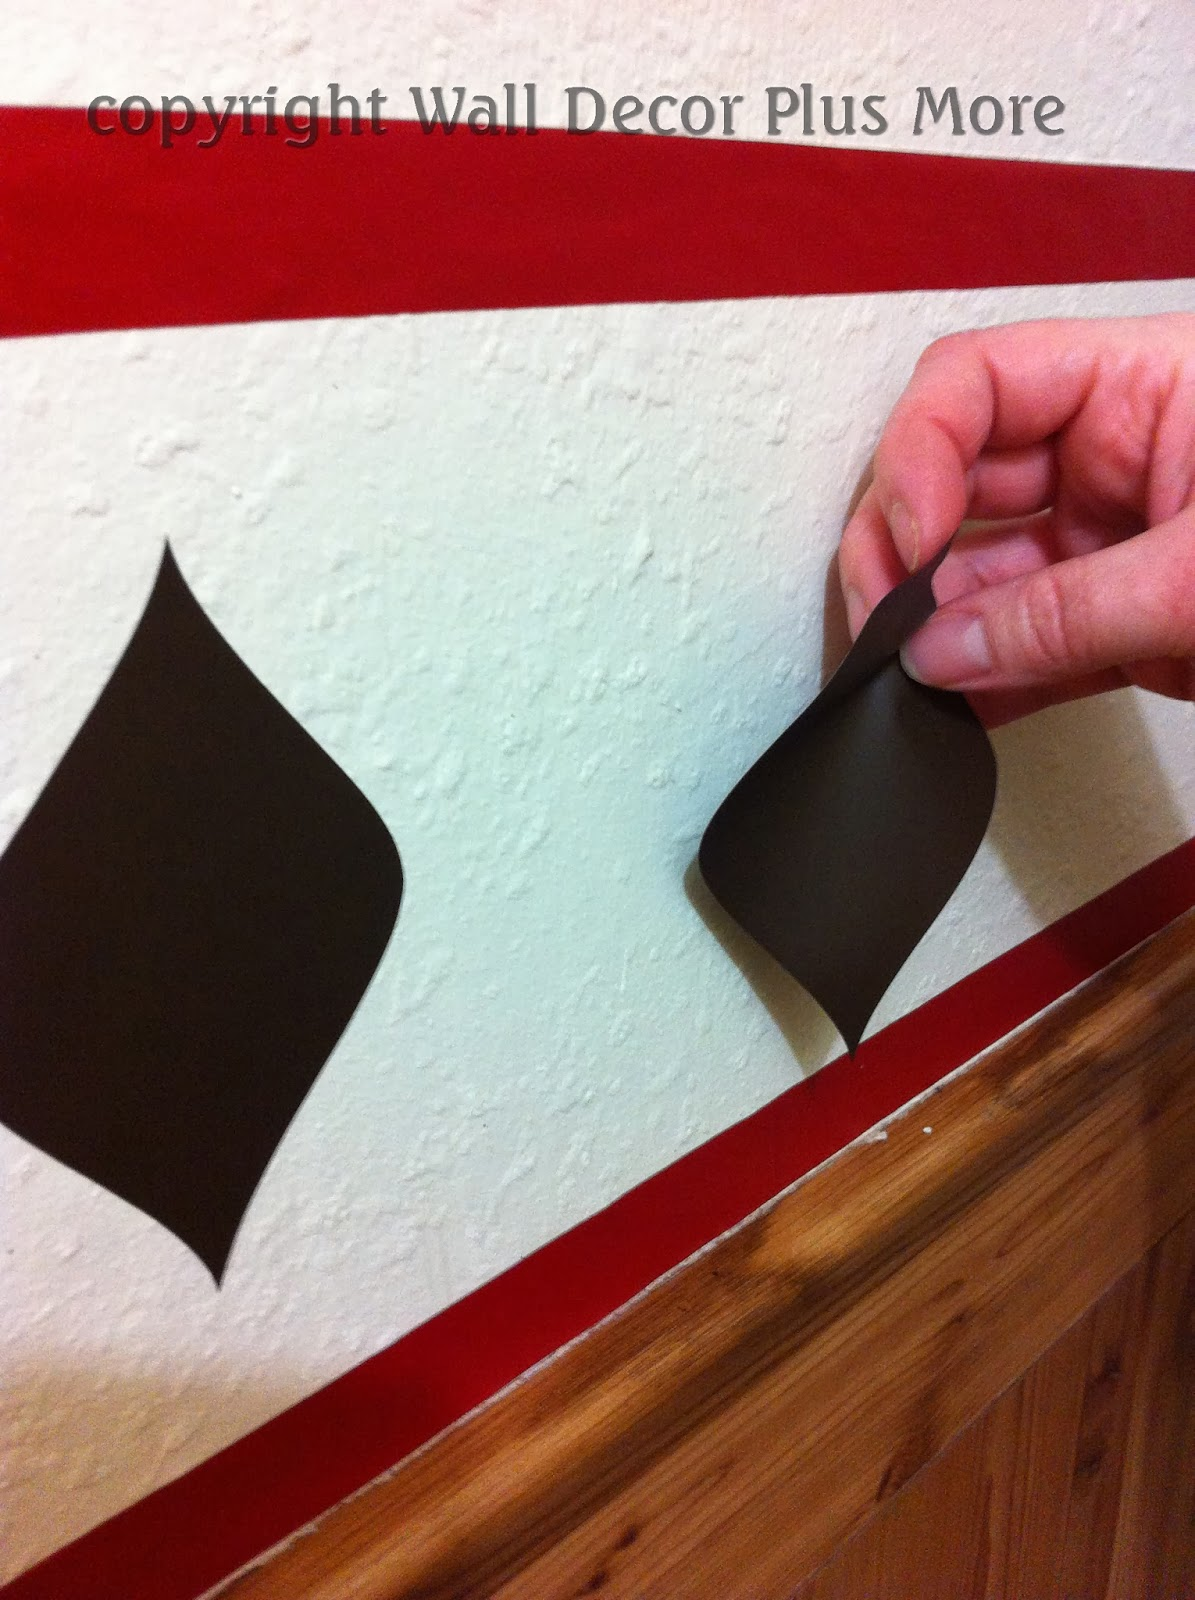 The Trending Stuff About Wall Decals And Stickers - Custom vinyl decal usage and application